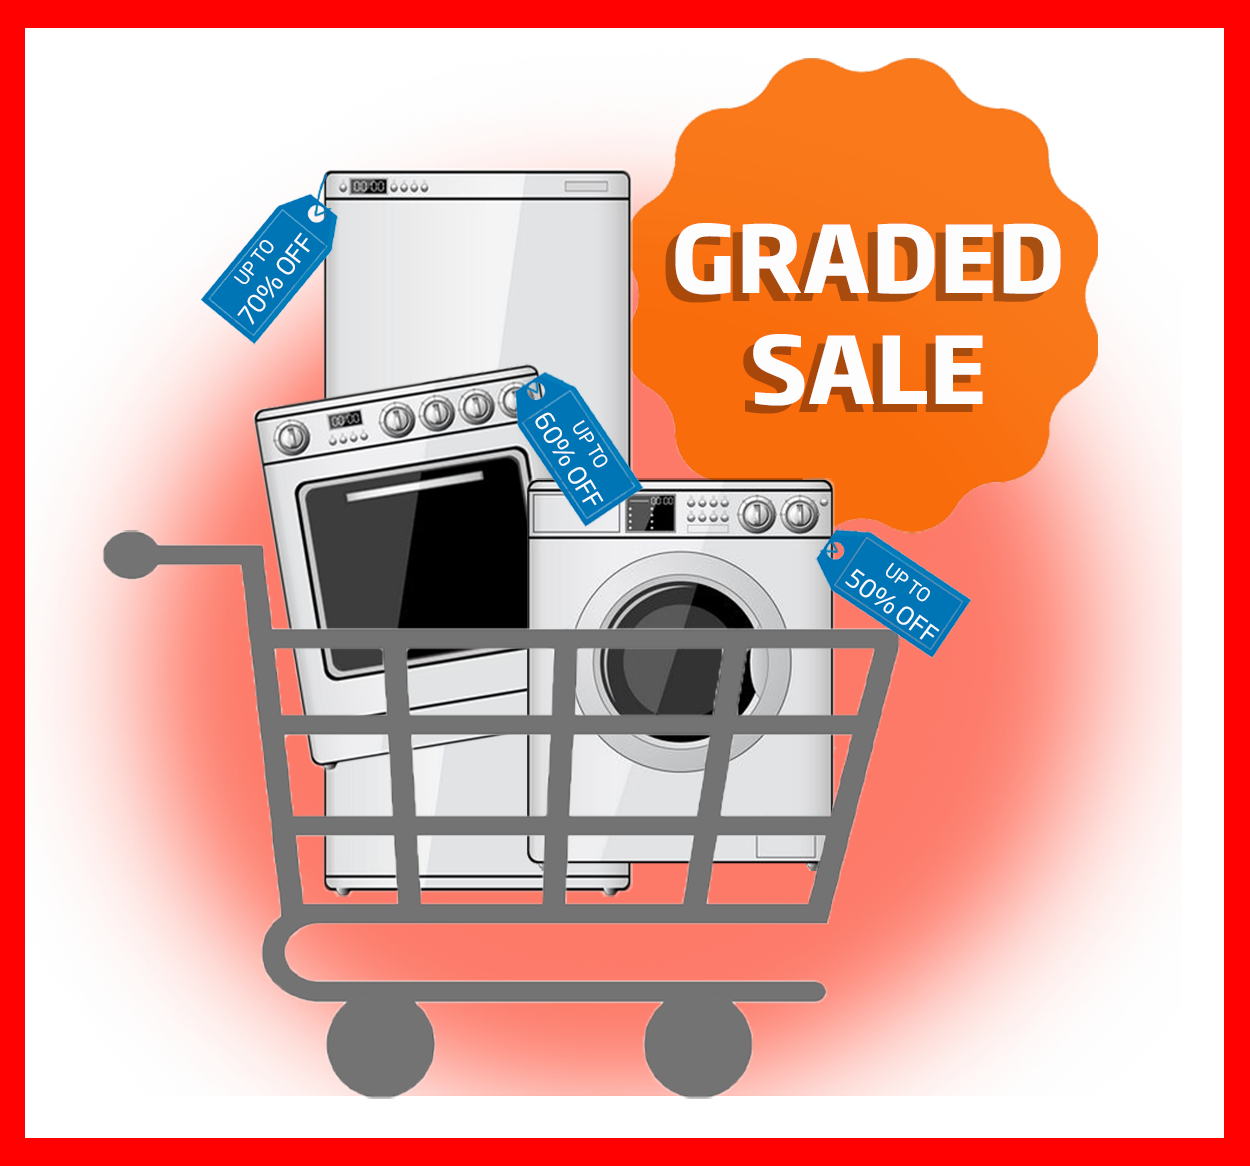 The Graded Sale Off